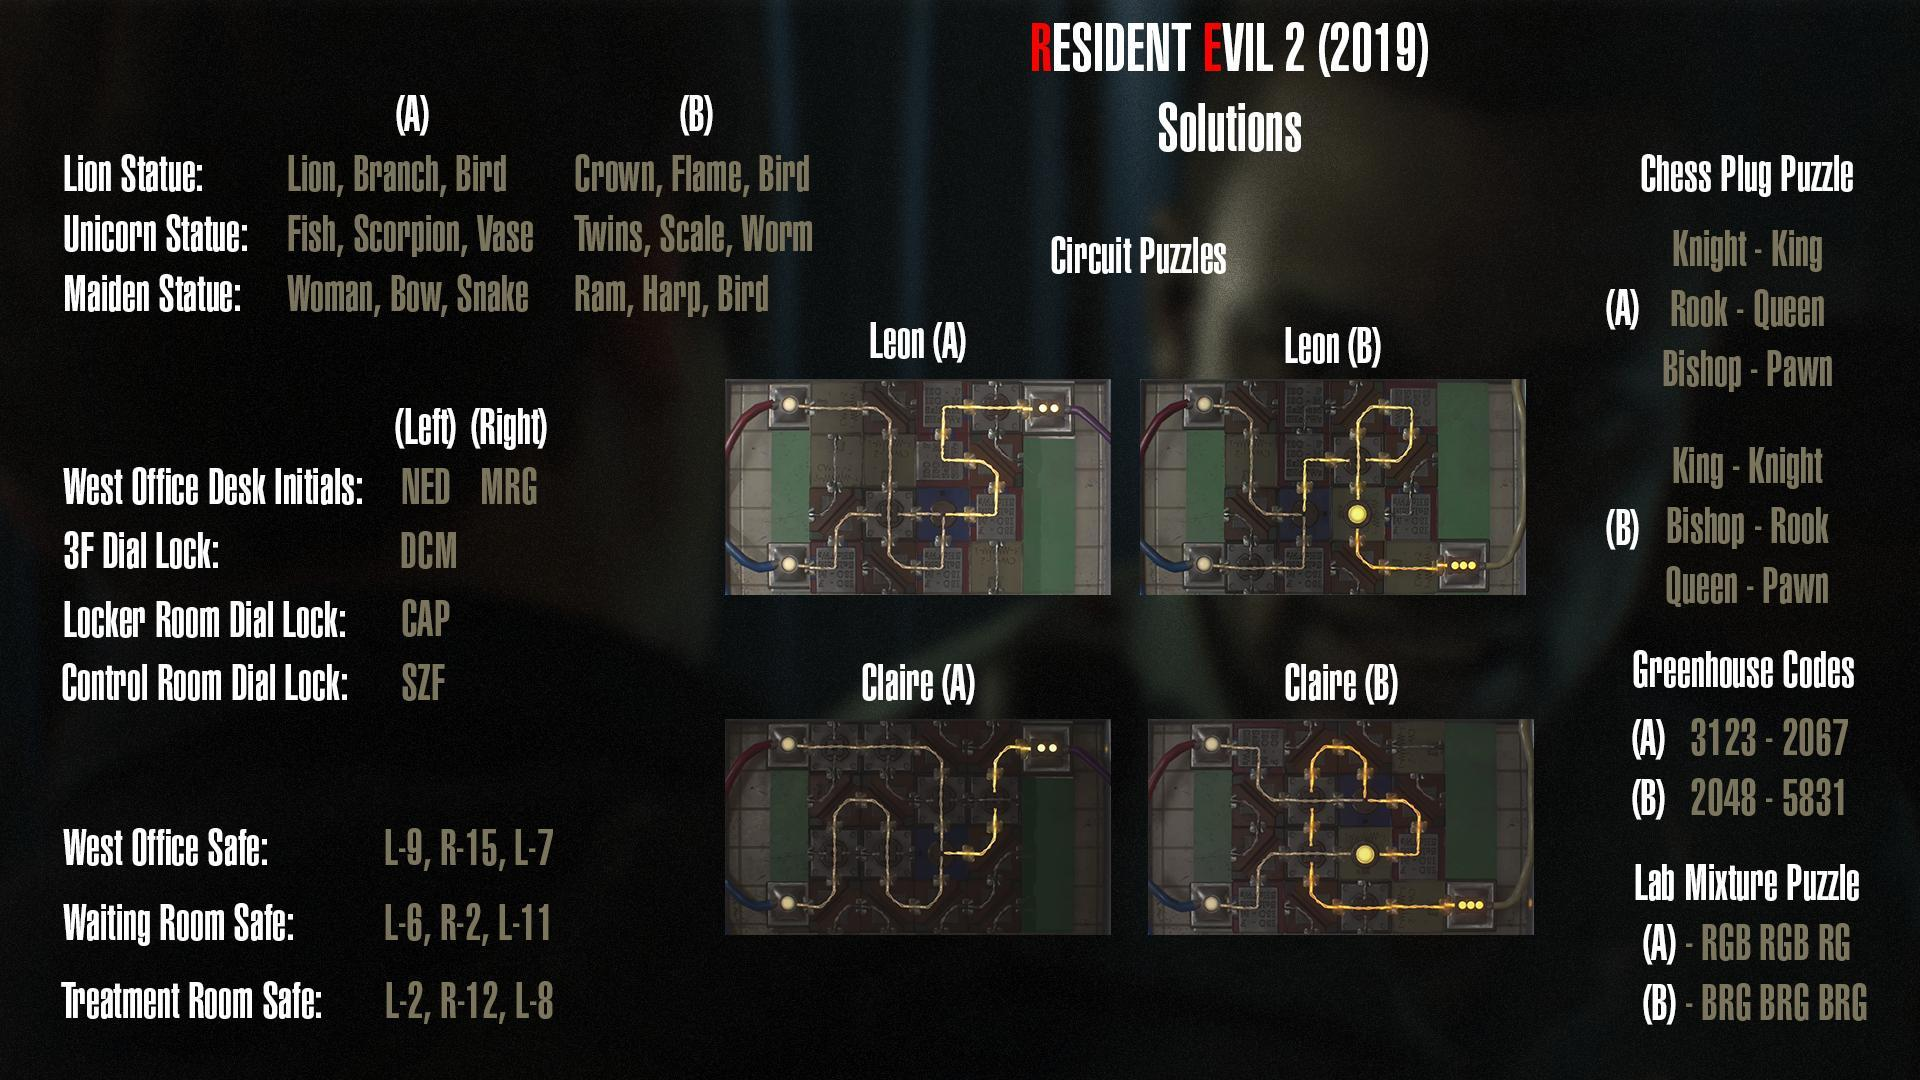 Resident Evil 2 100 Achievement Guide And Puzzle Solutions